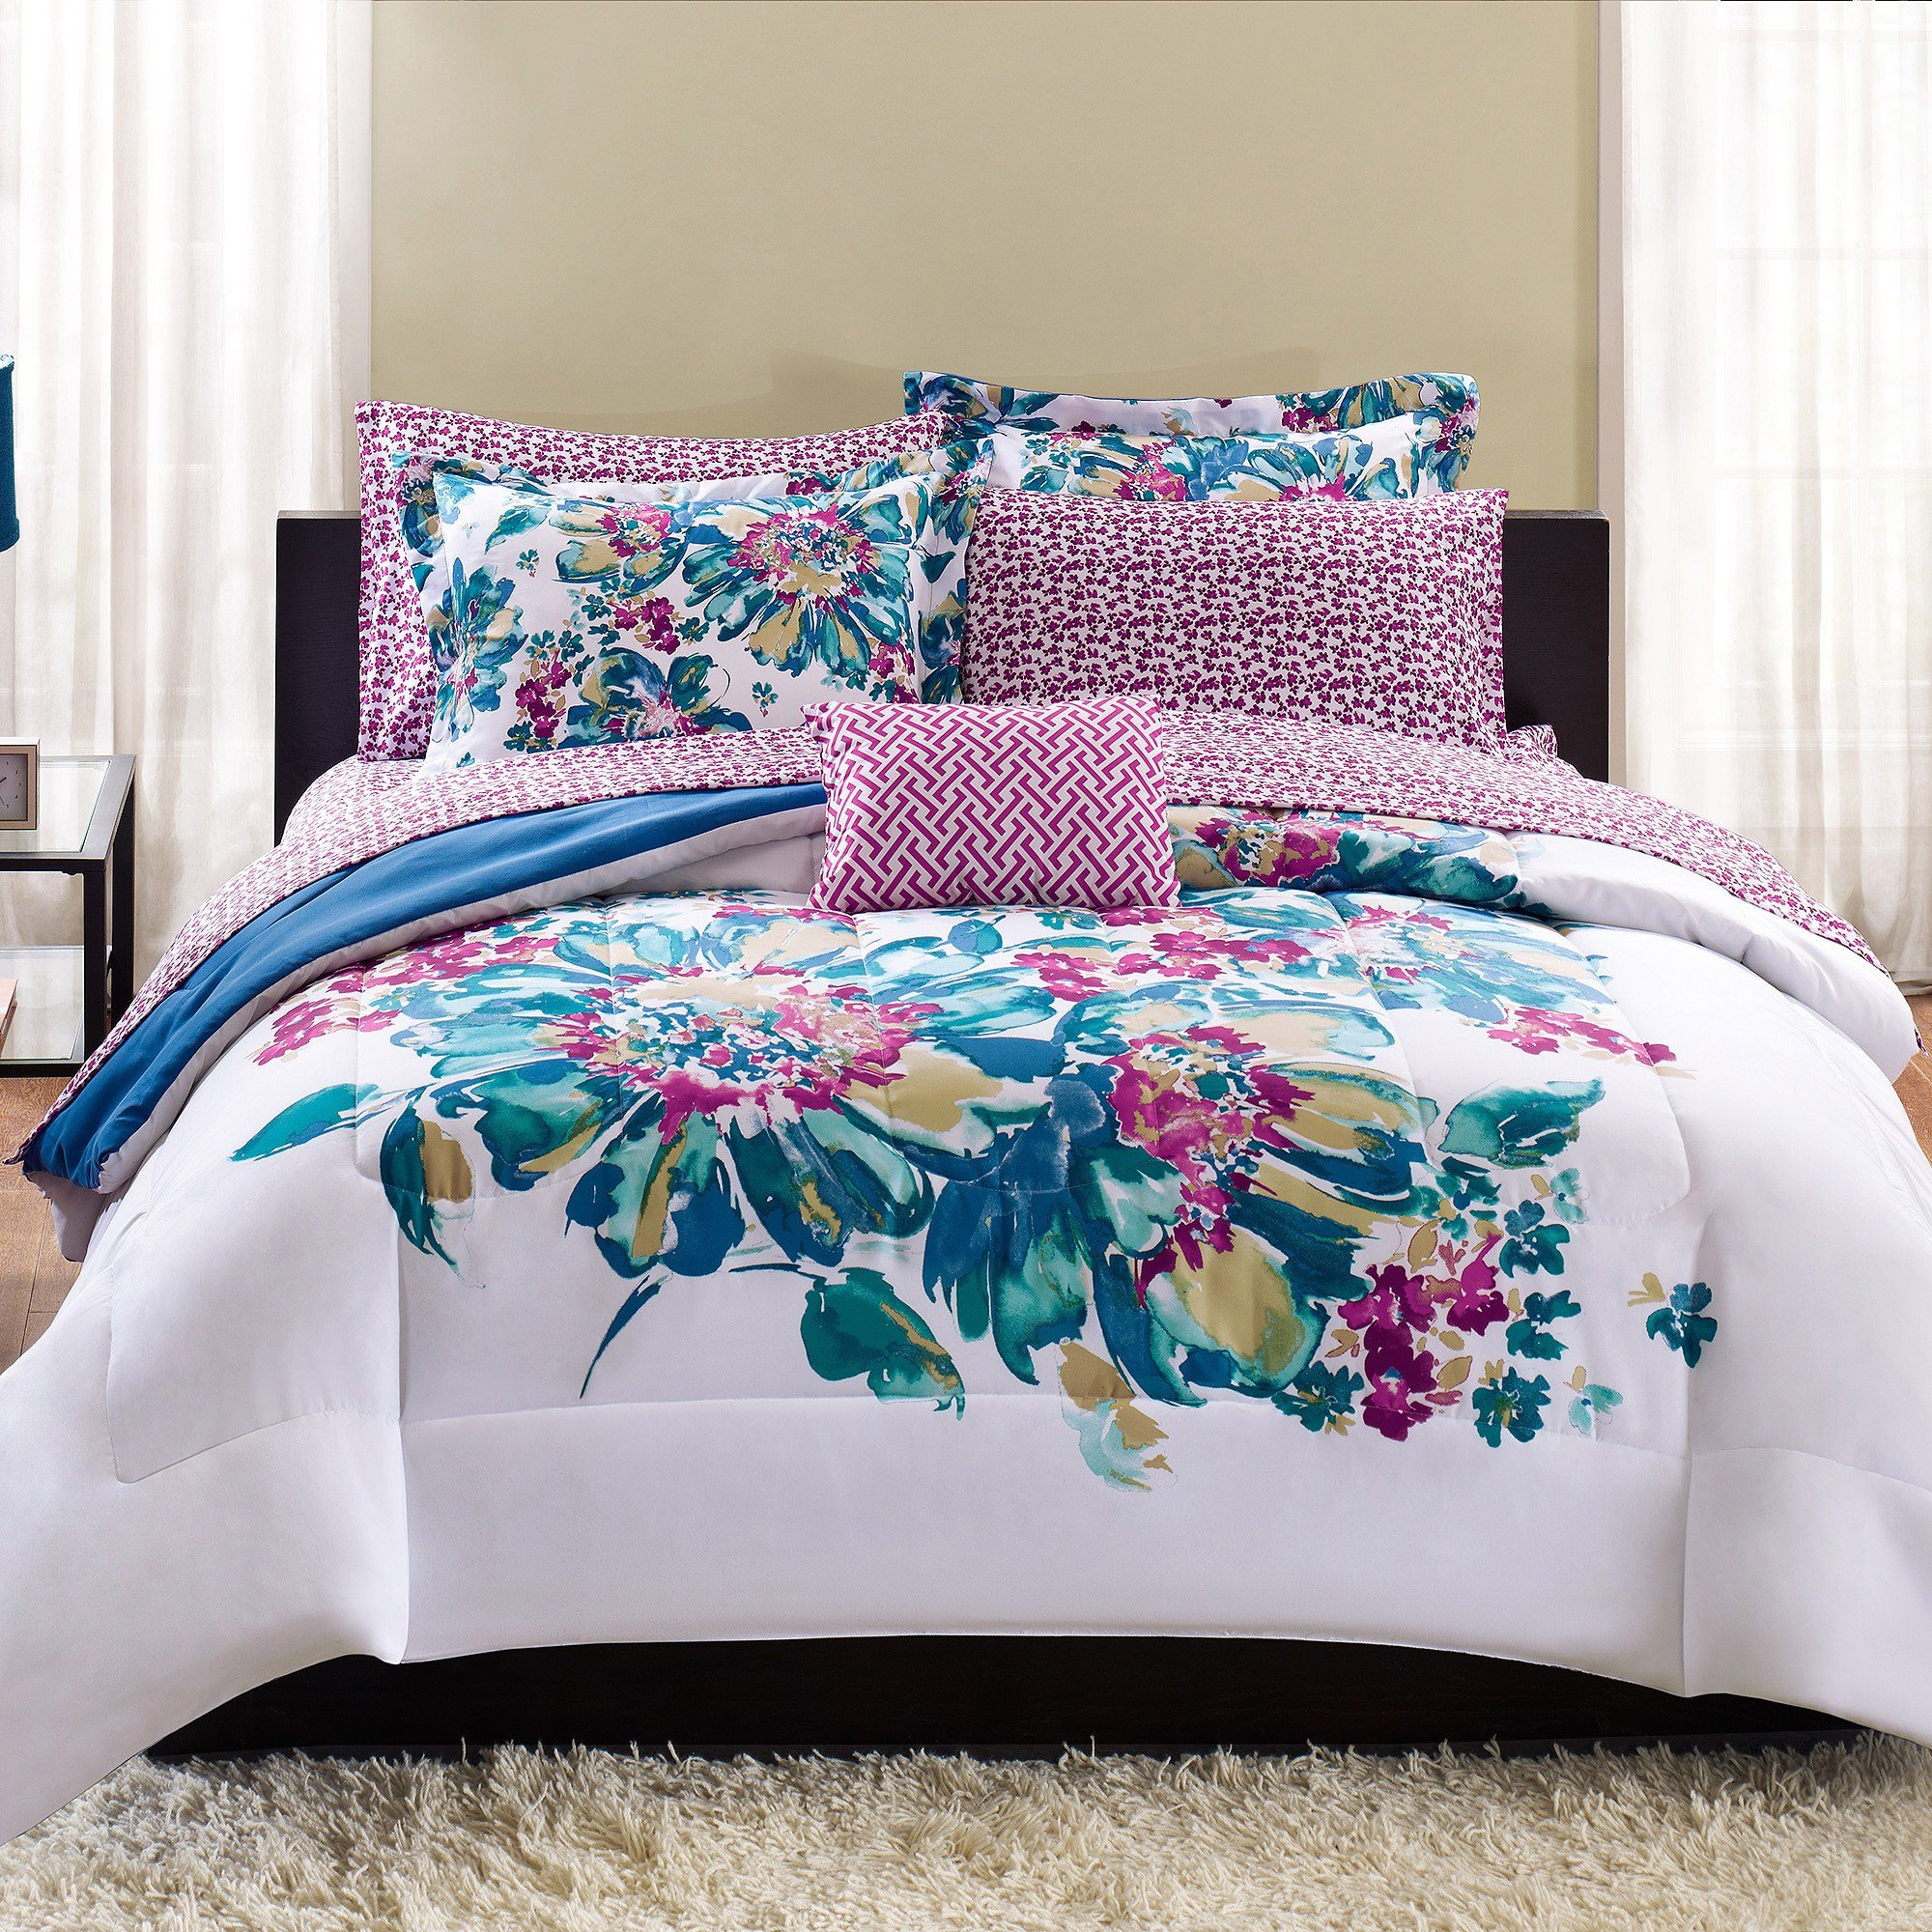 Best Mainstays Floral Bed In A Bag Bedding Set Walmart Com With Pictures